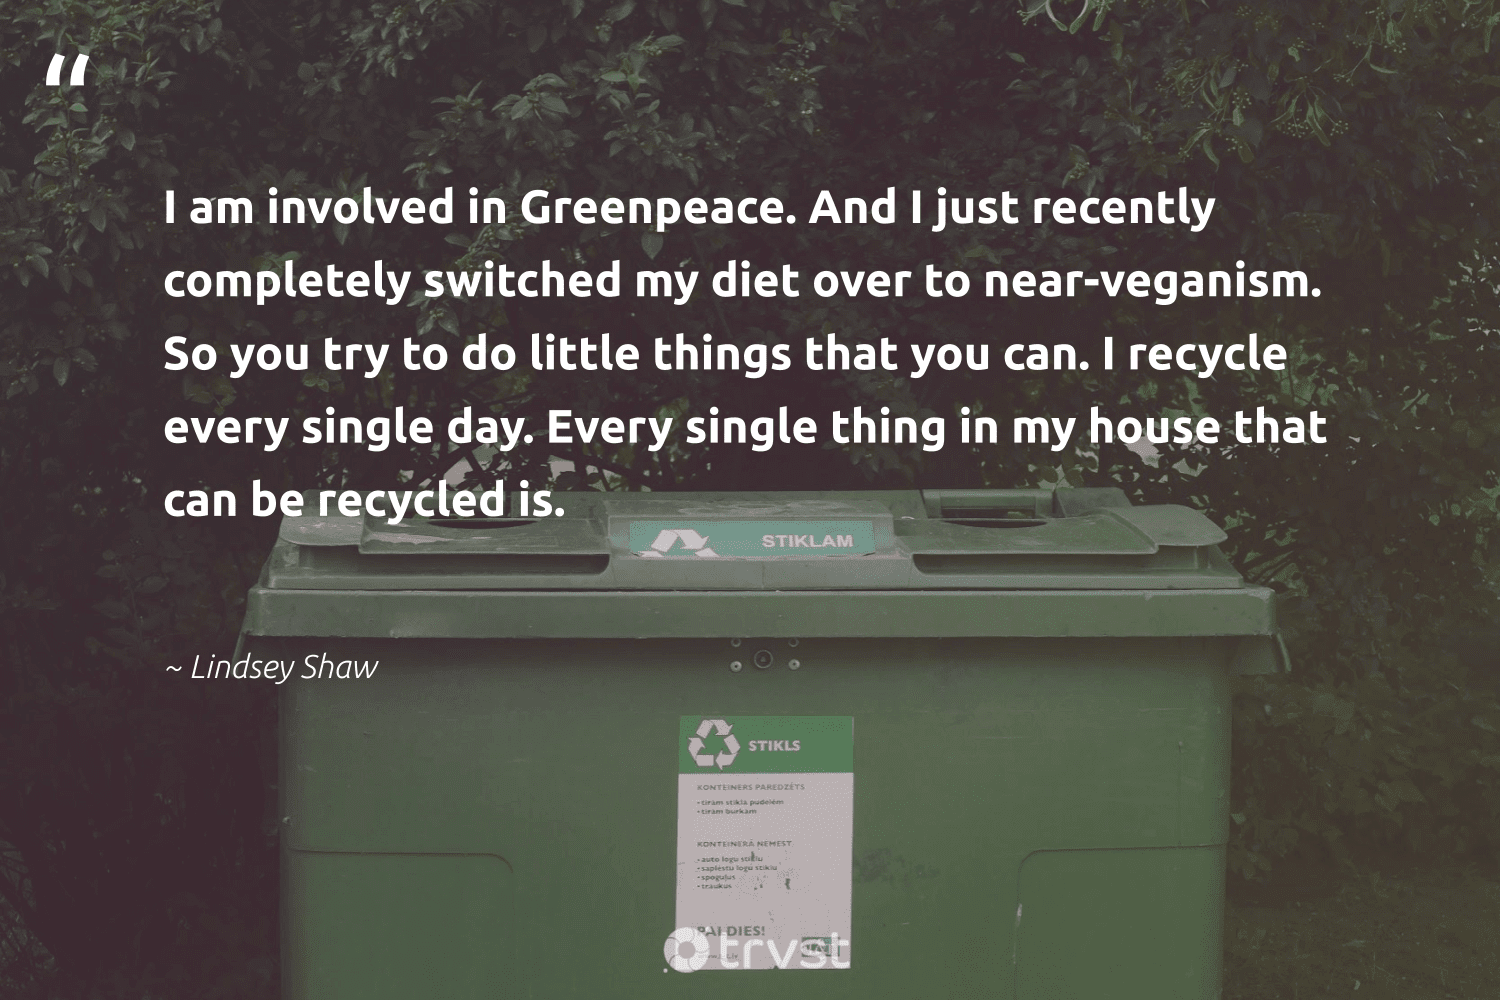 """""""I am involved in Greenpeace. And I just recently completely switched my diet over to near-veganism. So you try to do little things that you can. I recycle every single day. Every single thing in my house that can be recycled is.""""  - Lindsey Shaw #trvst #quotes #recycling #recycle #recycled #reducereuserecycle #reduce #sustainableliving #waronwaste #thinkgreen #upcycle #refurbished"""